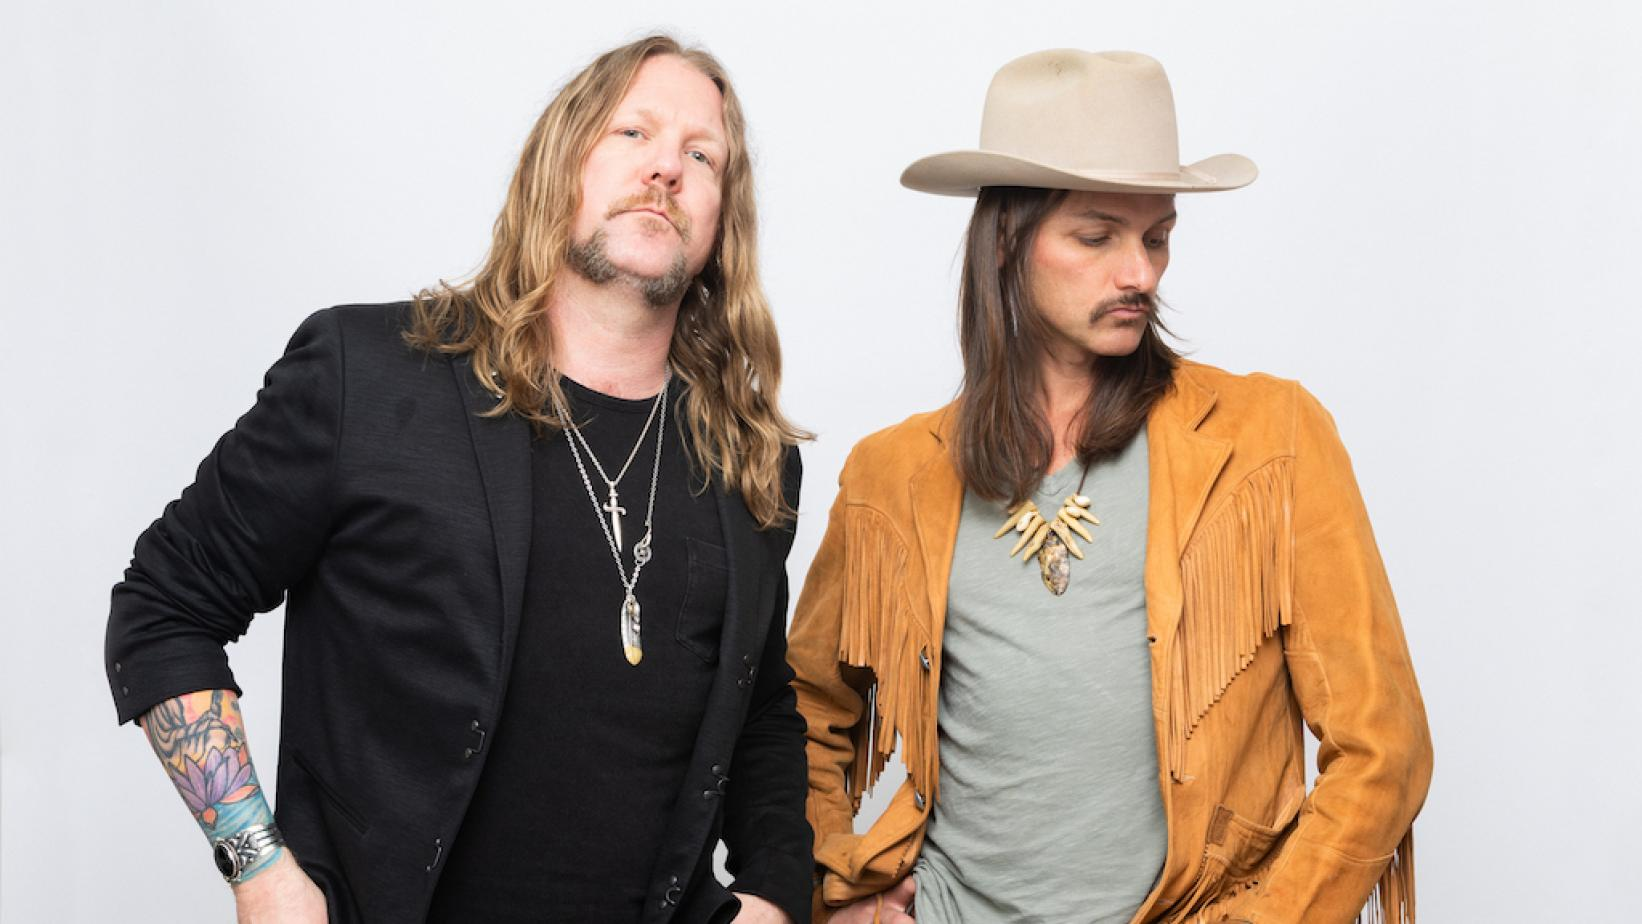 Devon Allman (L) and Duane Betts (R) of The Allman Betts Band